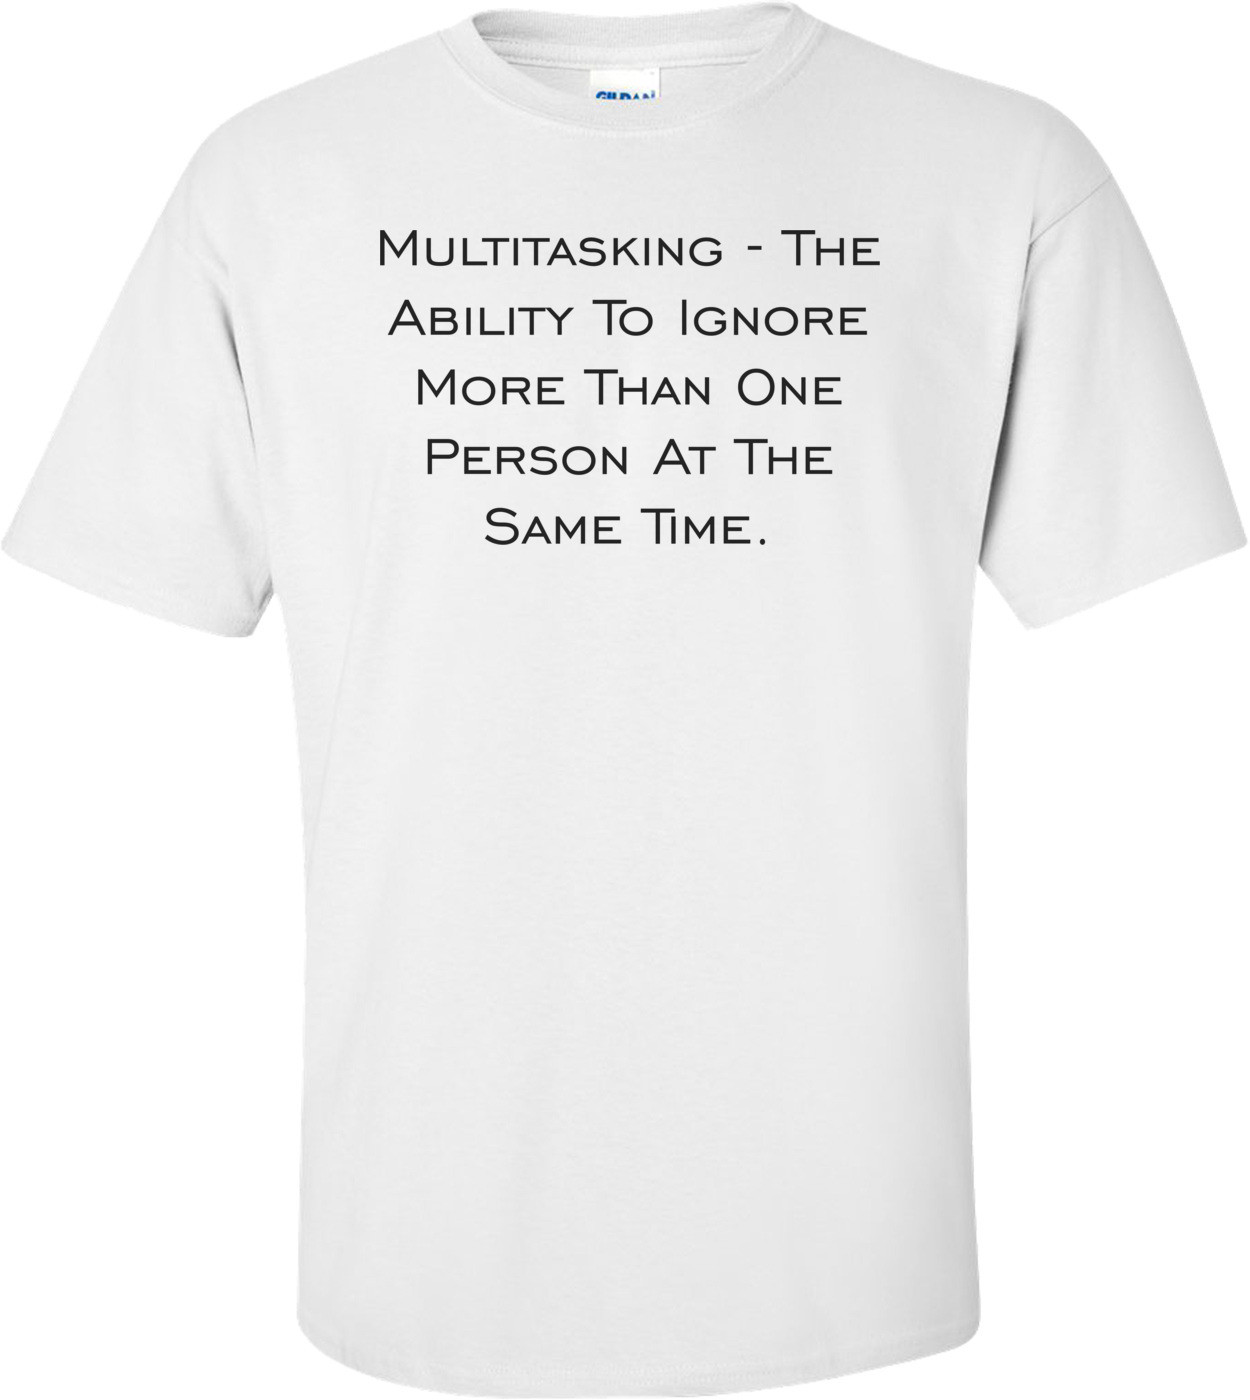 Multitasking - The Ability To Ignore More Than One Person At The Same Time. Shirt